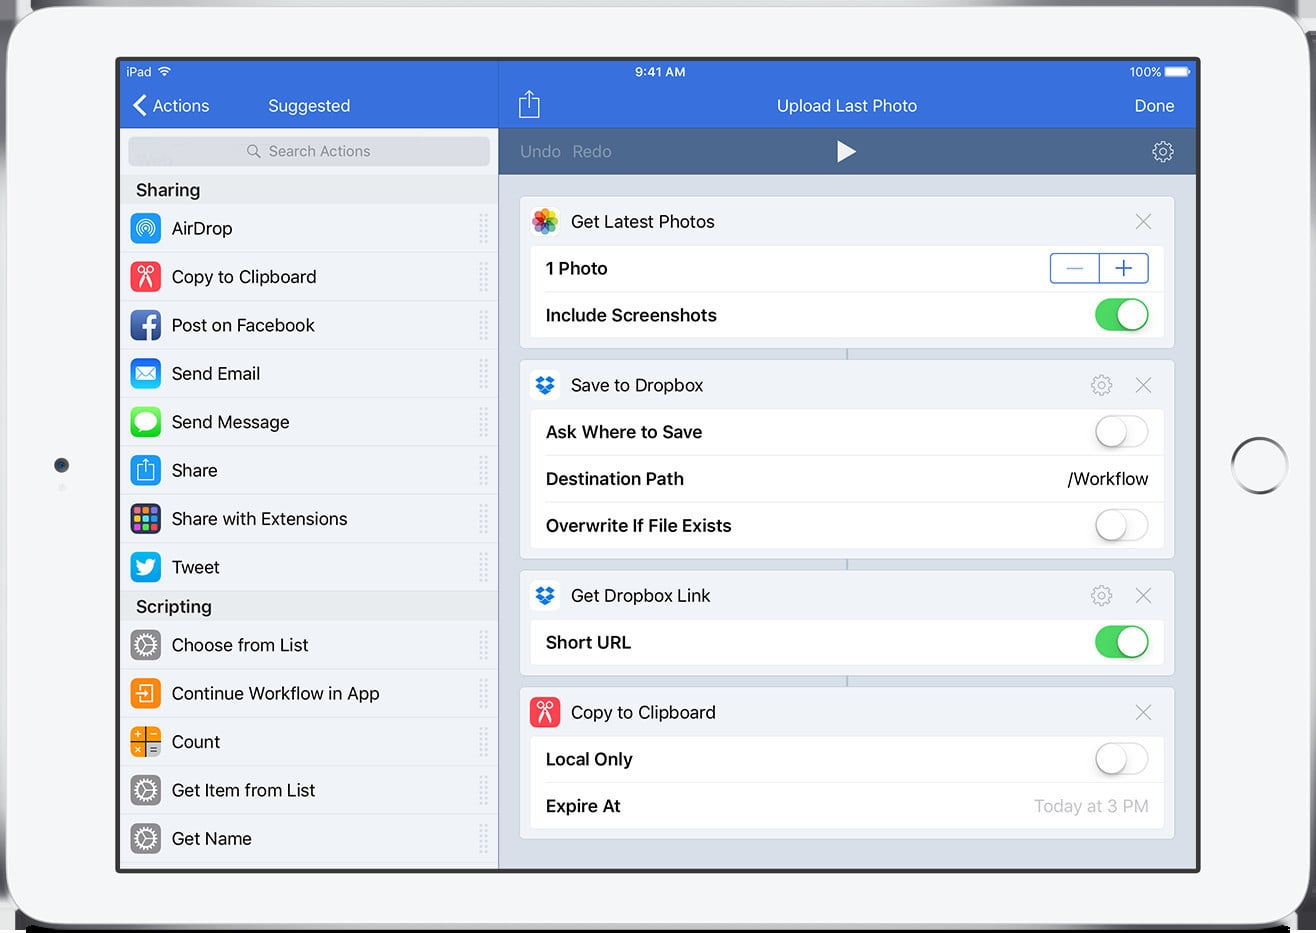 After Apple Acquisition, Don't Expect Any Further Workflow Updates